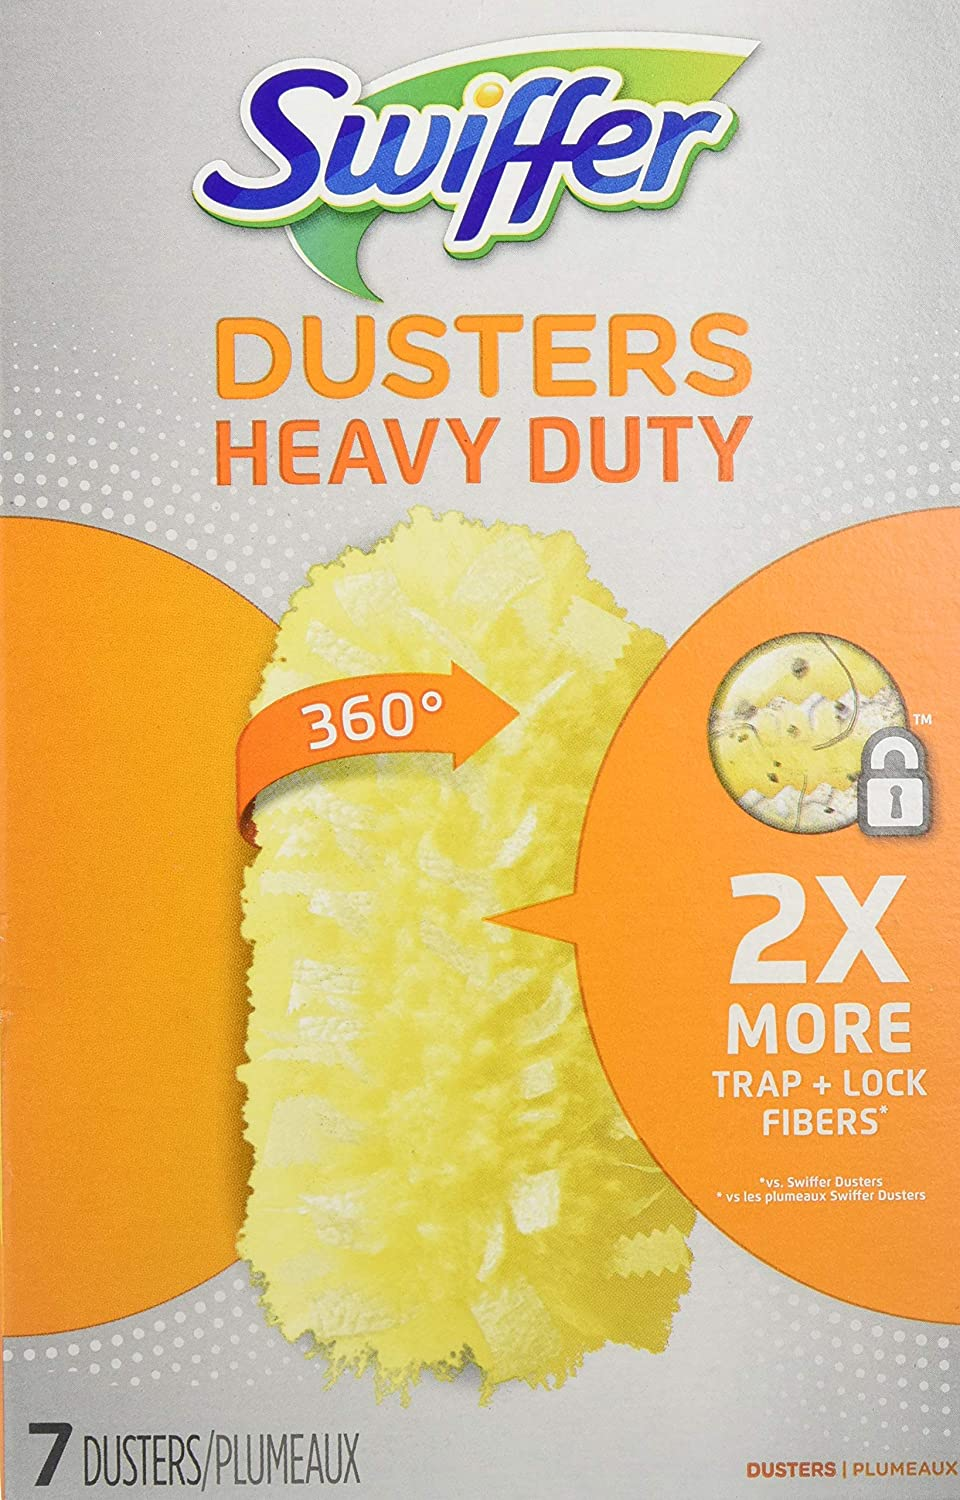 Swiffer 360 Dusters Refills Unscented 7 Ct - 3 Pack